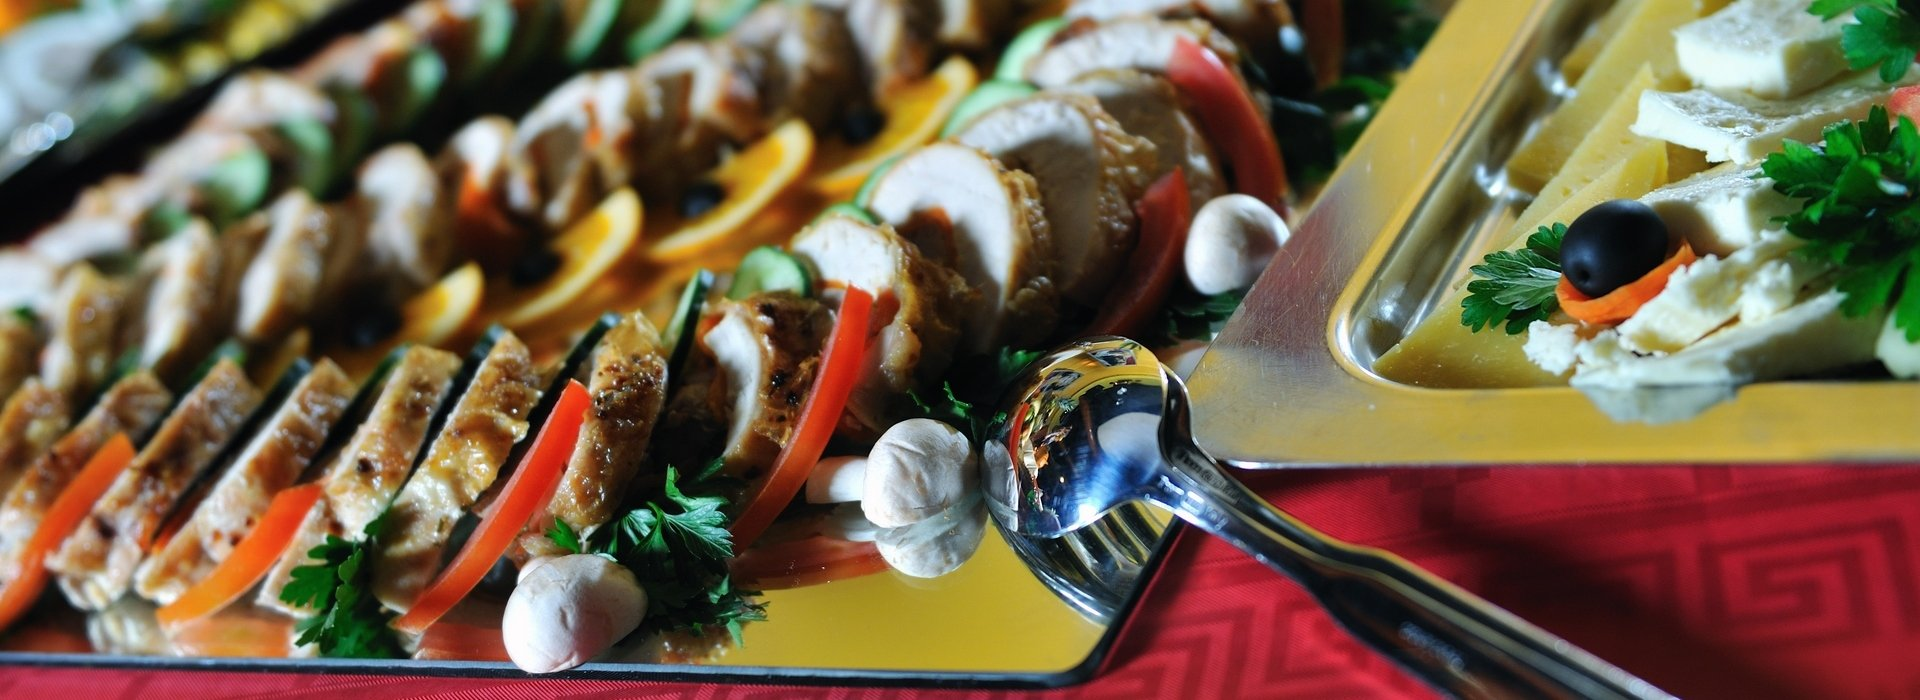 Catering Service in Budapest – Konferenz in Budapest, Ungarn